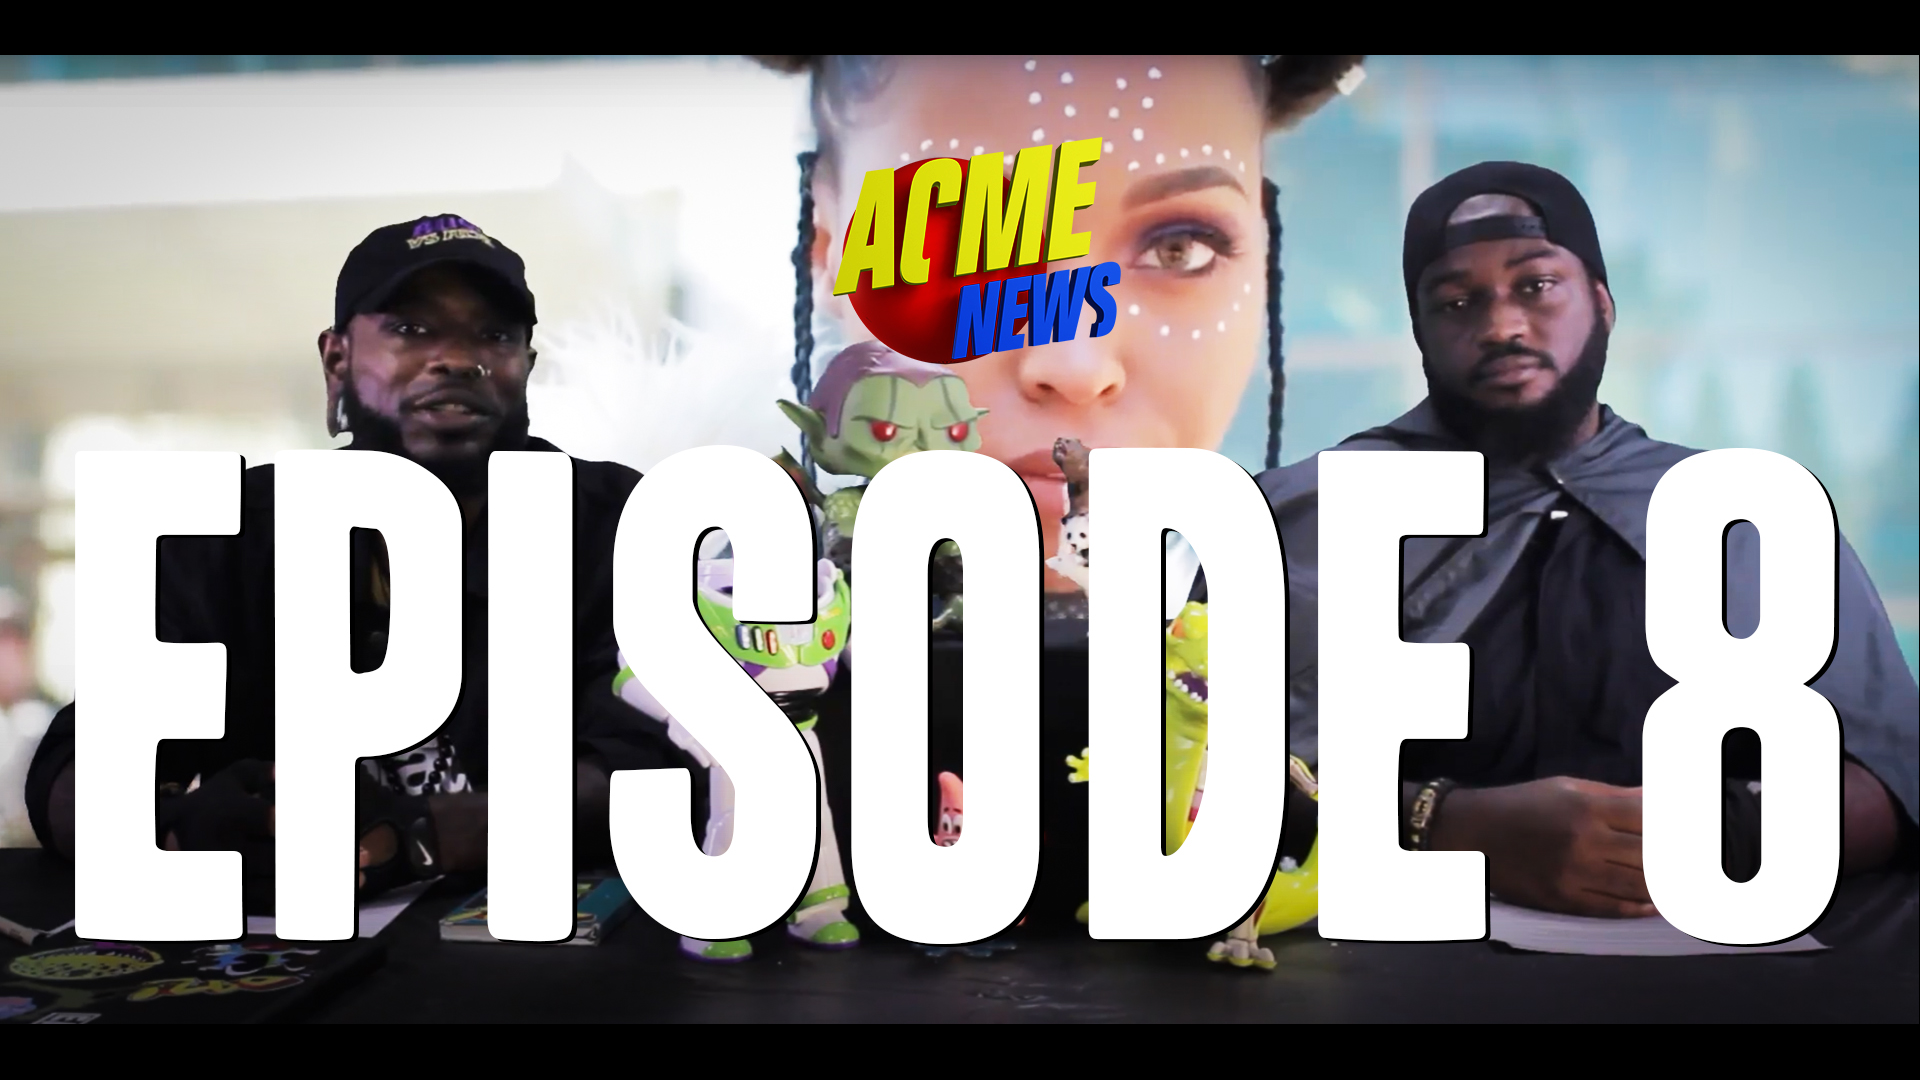 Acme News Season 1 Episode 8